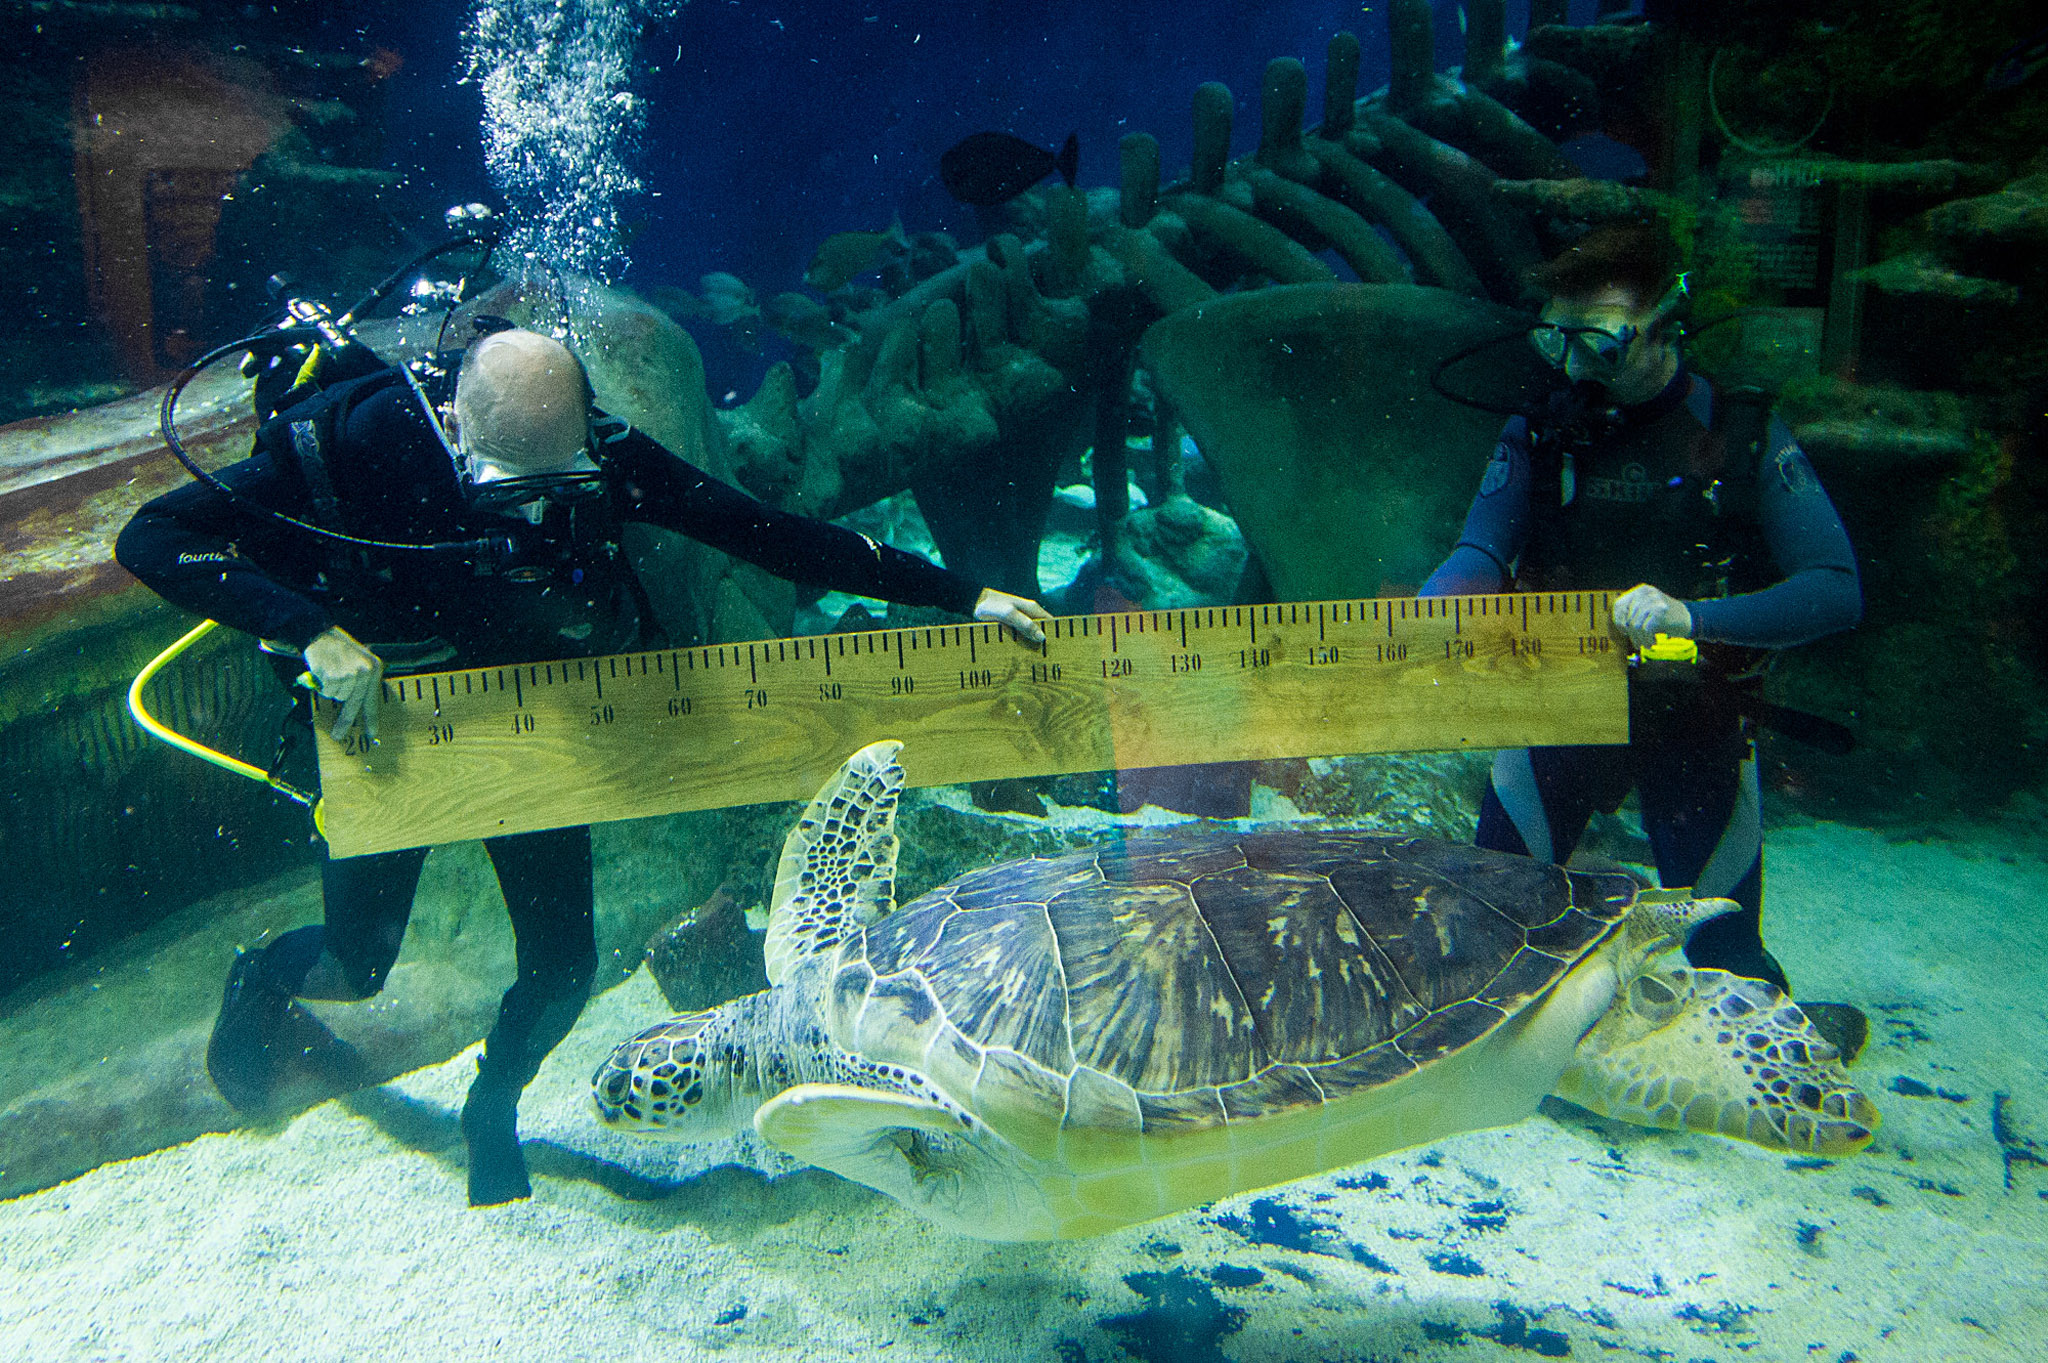 Sealife London Aquarium's Annual Health Check...Wednesday 30th July 2014 - The Sealife London Aquarium have conducted their week long annual health check of all 6,600 animals in their care.  This picture: Aquarists measure the 1.2m long shell of Phoenix, one of the enormous 130kg rare green sea turtles For further information or a full release please contact Amy Williams at freerange communications on amy@freerange.eu or 020 7402 9966 PR Handout - free to use in conjunction with this story only Copyright: Mikael Buck / Sealife London Aquarium 07828201042 / mikaelbuck@gmail.com